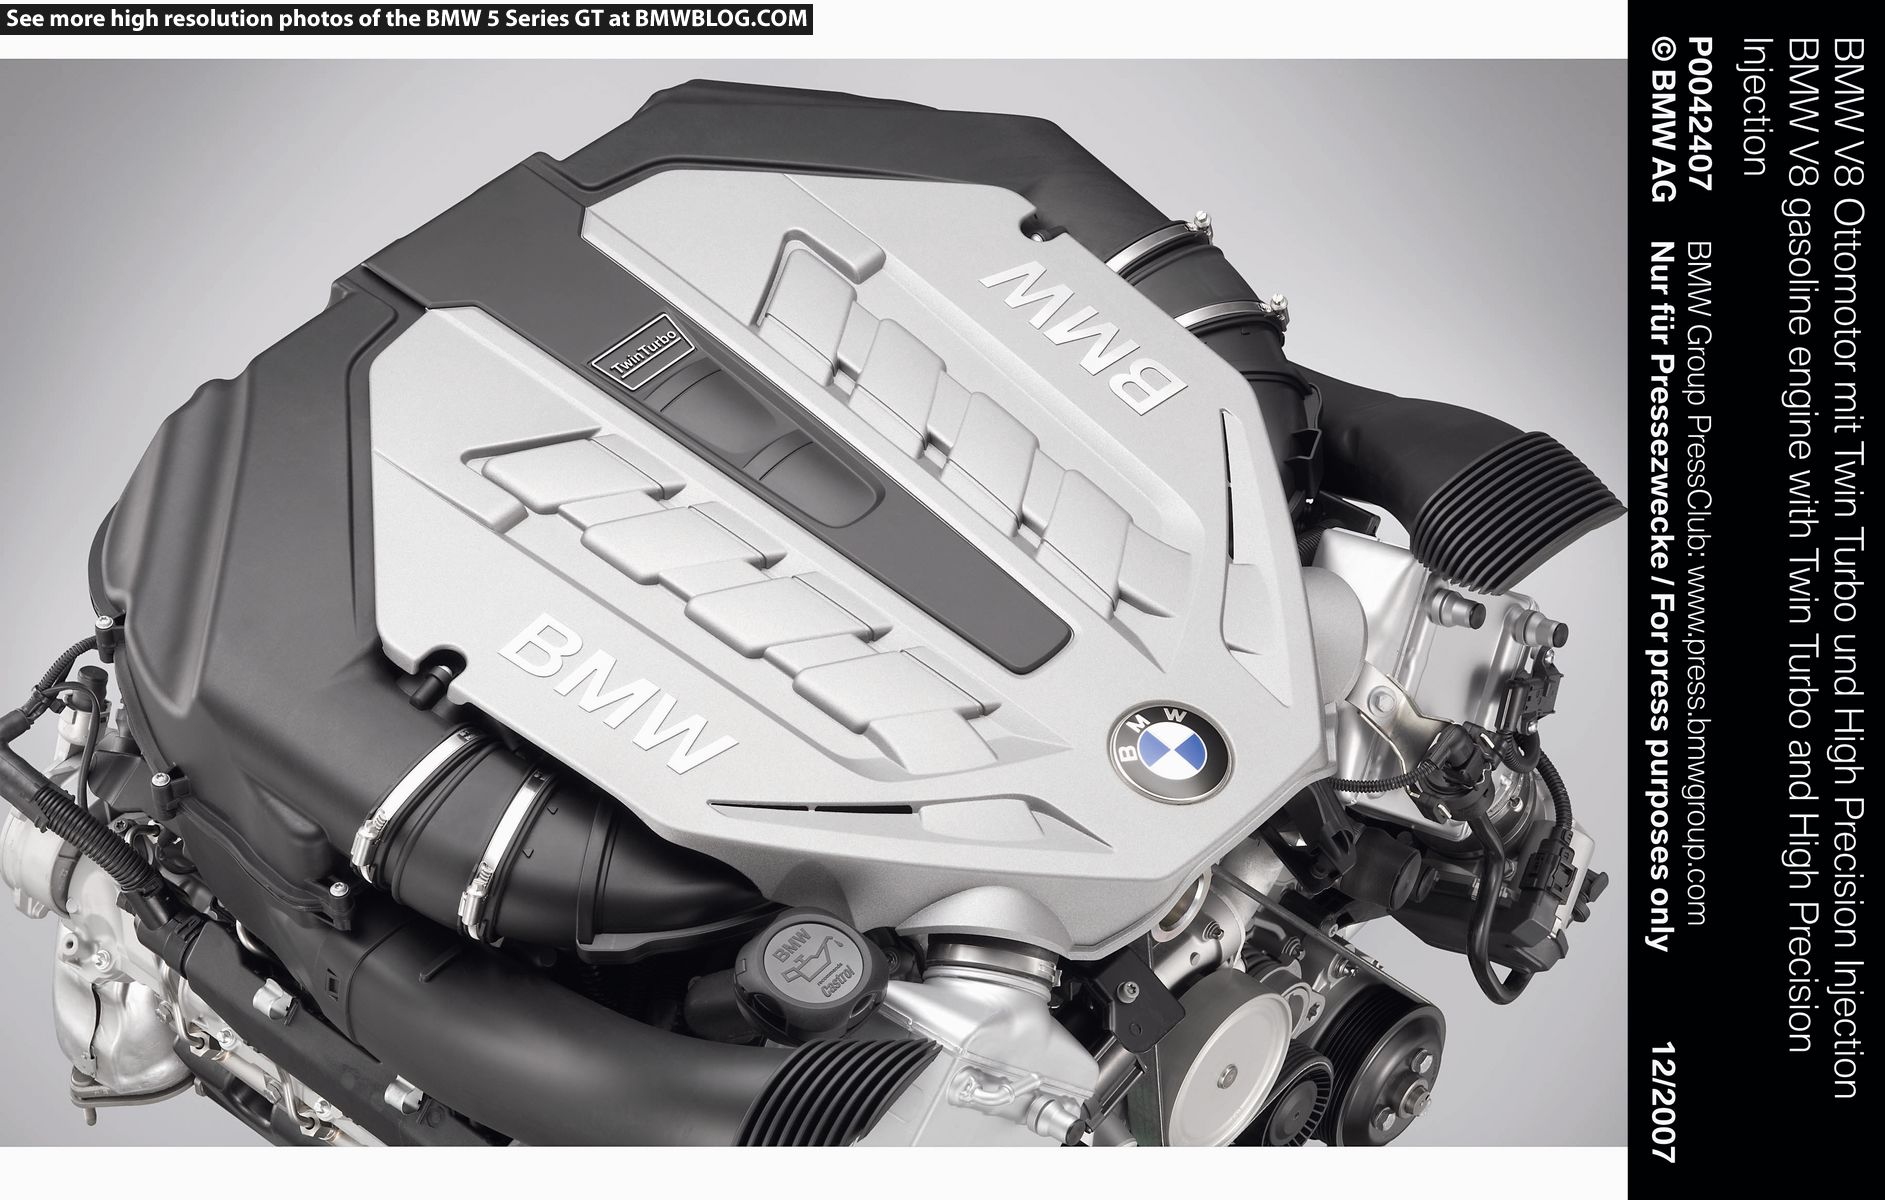 BMW to replace faulty timing chain in 2008-2014 vehicles